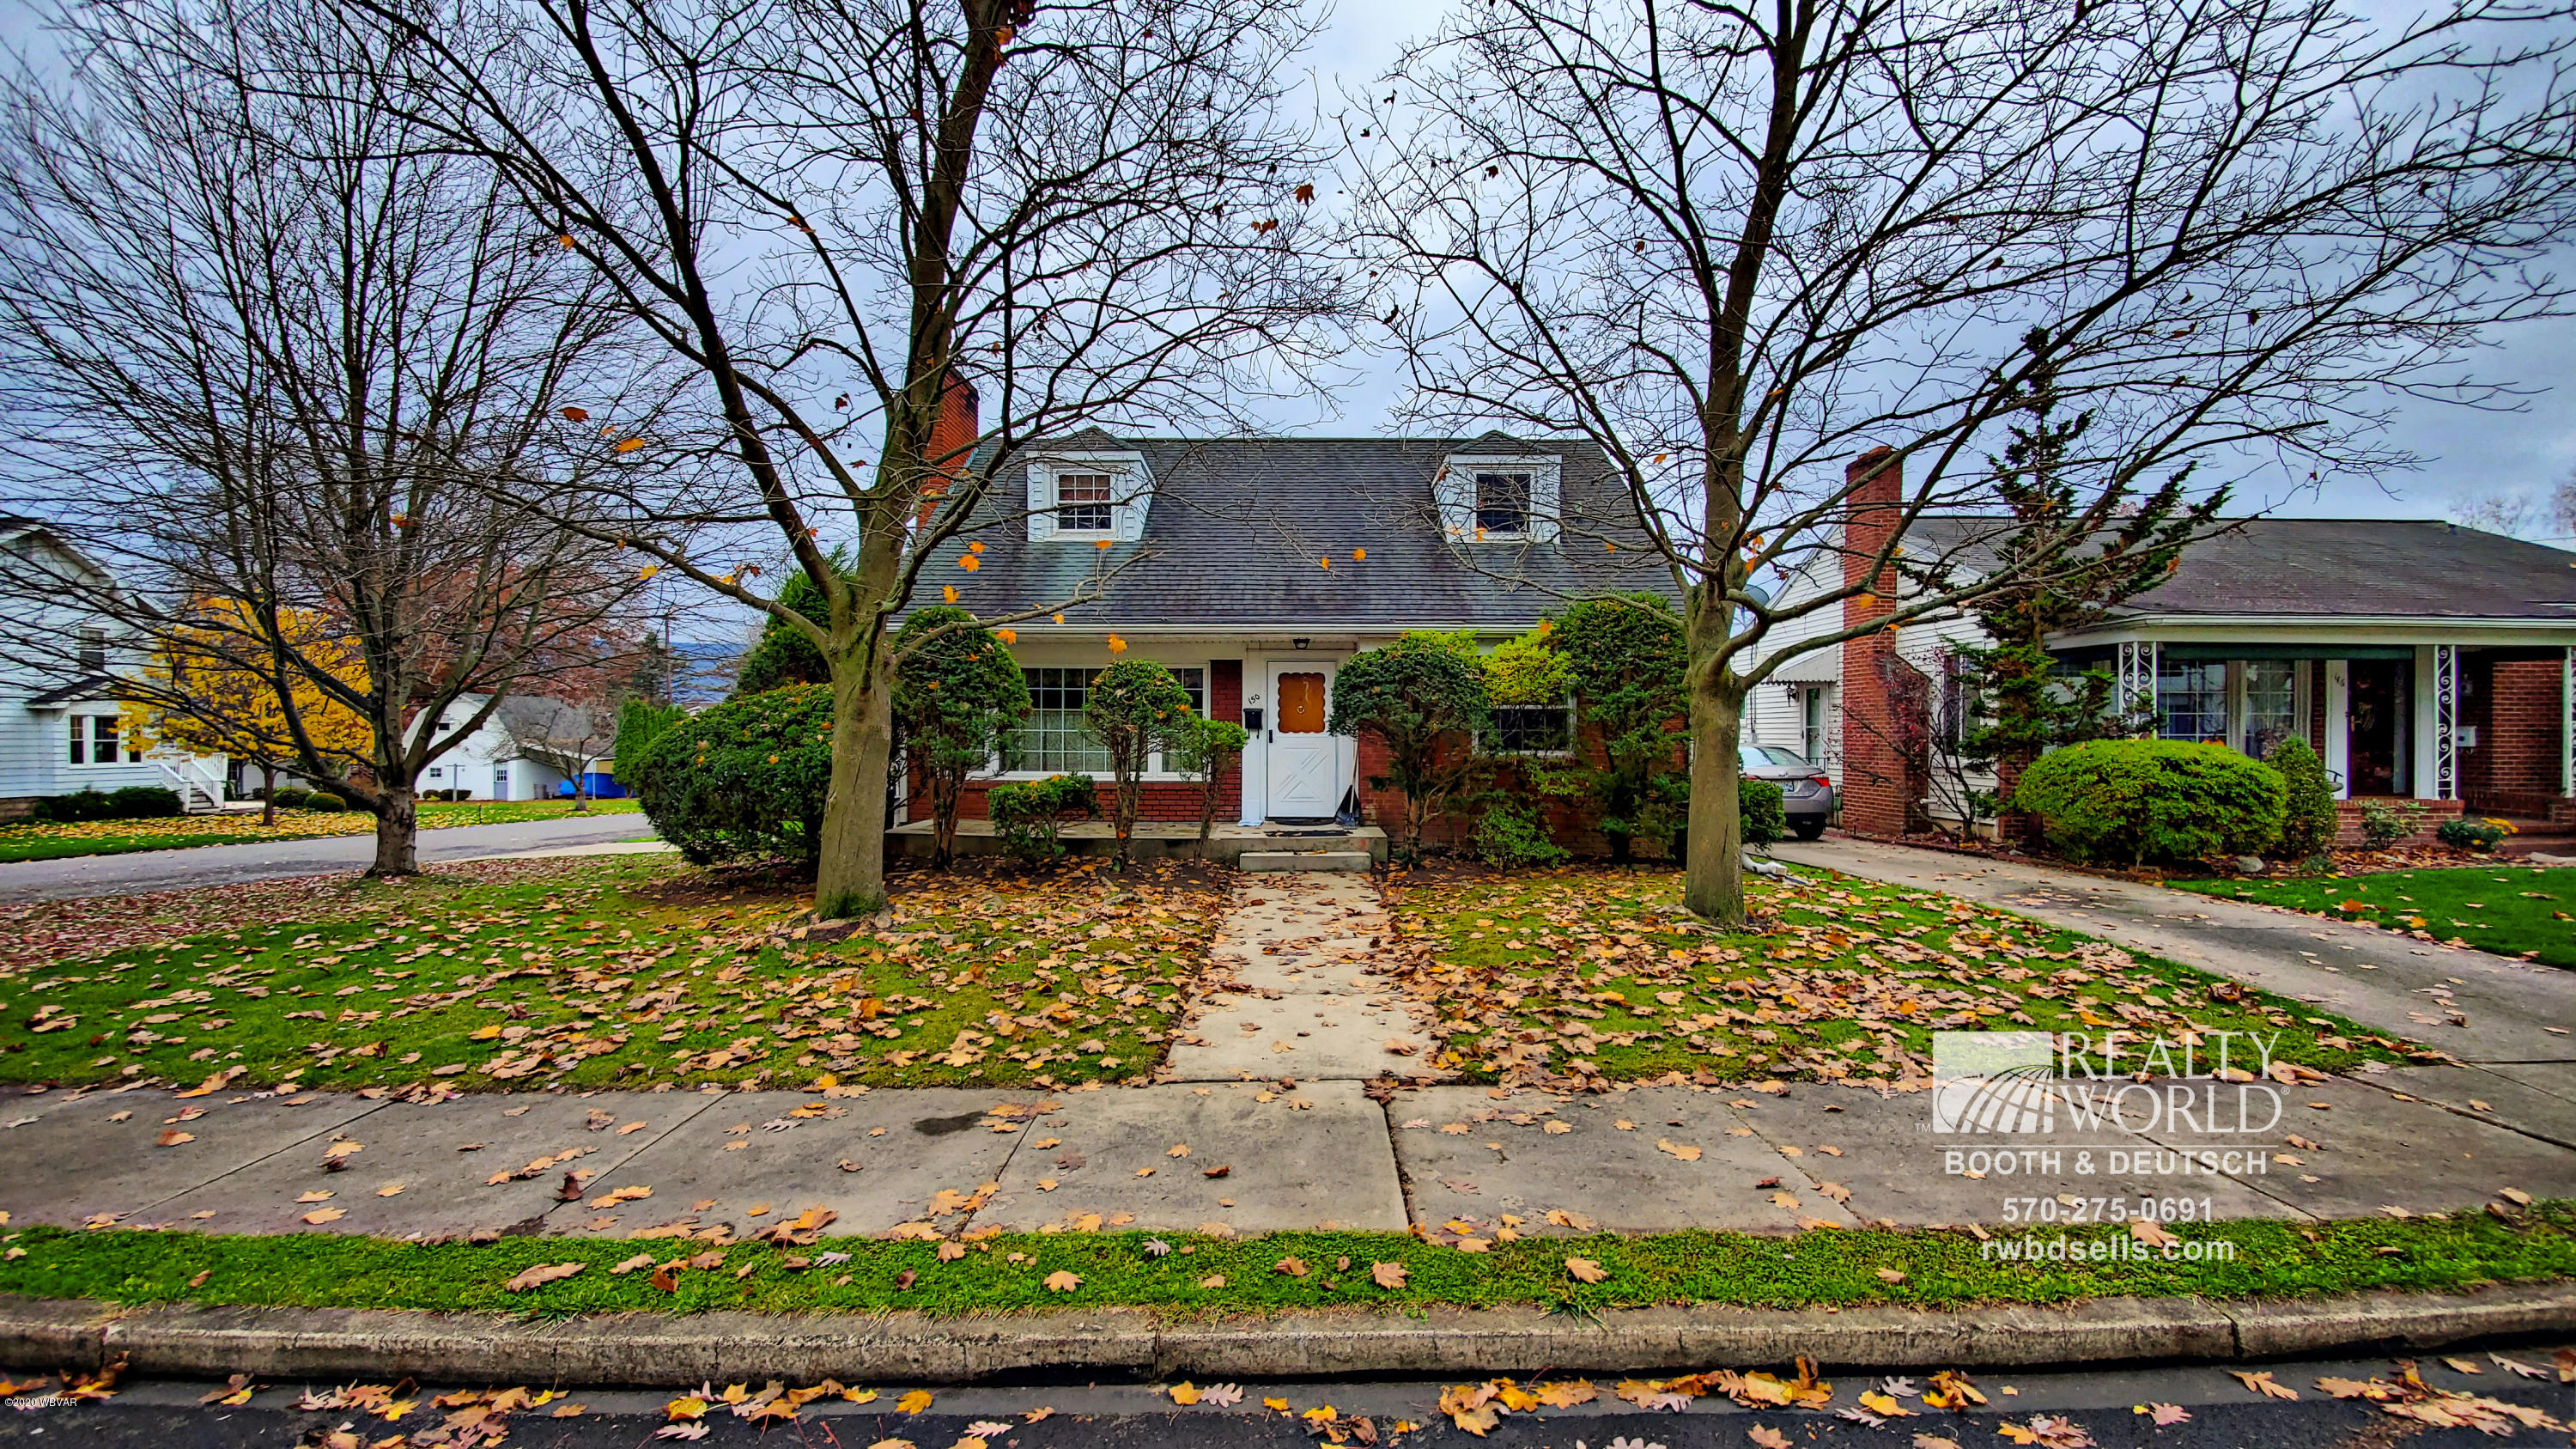 150 UNION AVENUE, Williamsport, PA 17701, 4 Bedrooms Bedrooms, ,1 BathroomBathrooms,Residential,For sale,UNION,WB-91531